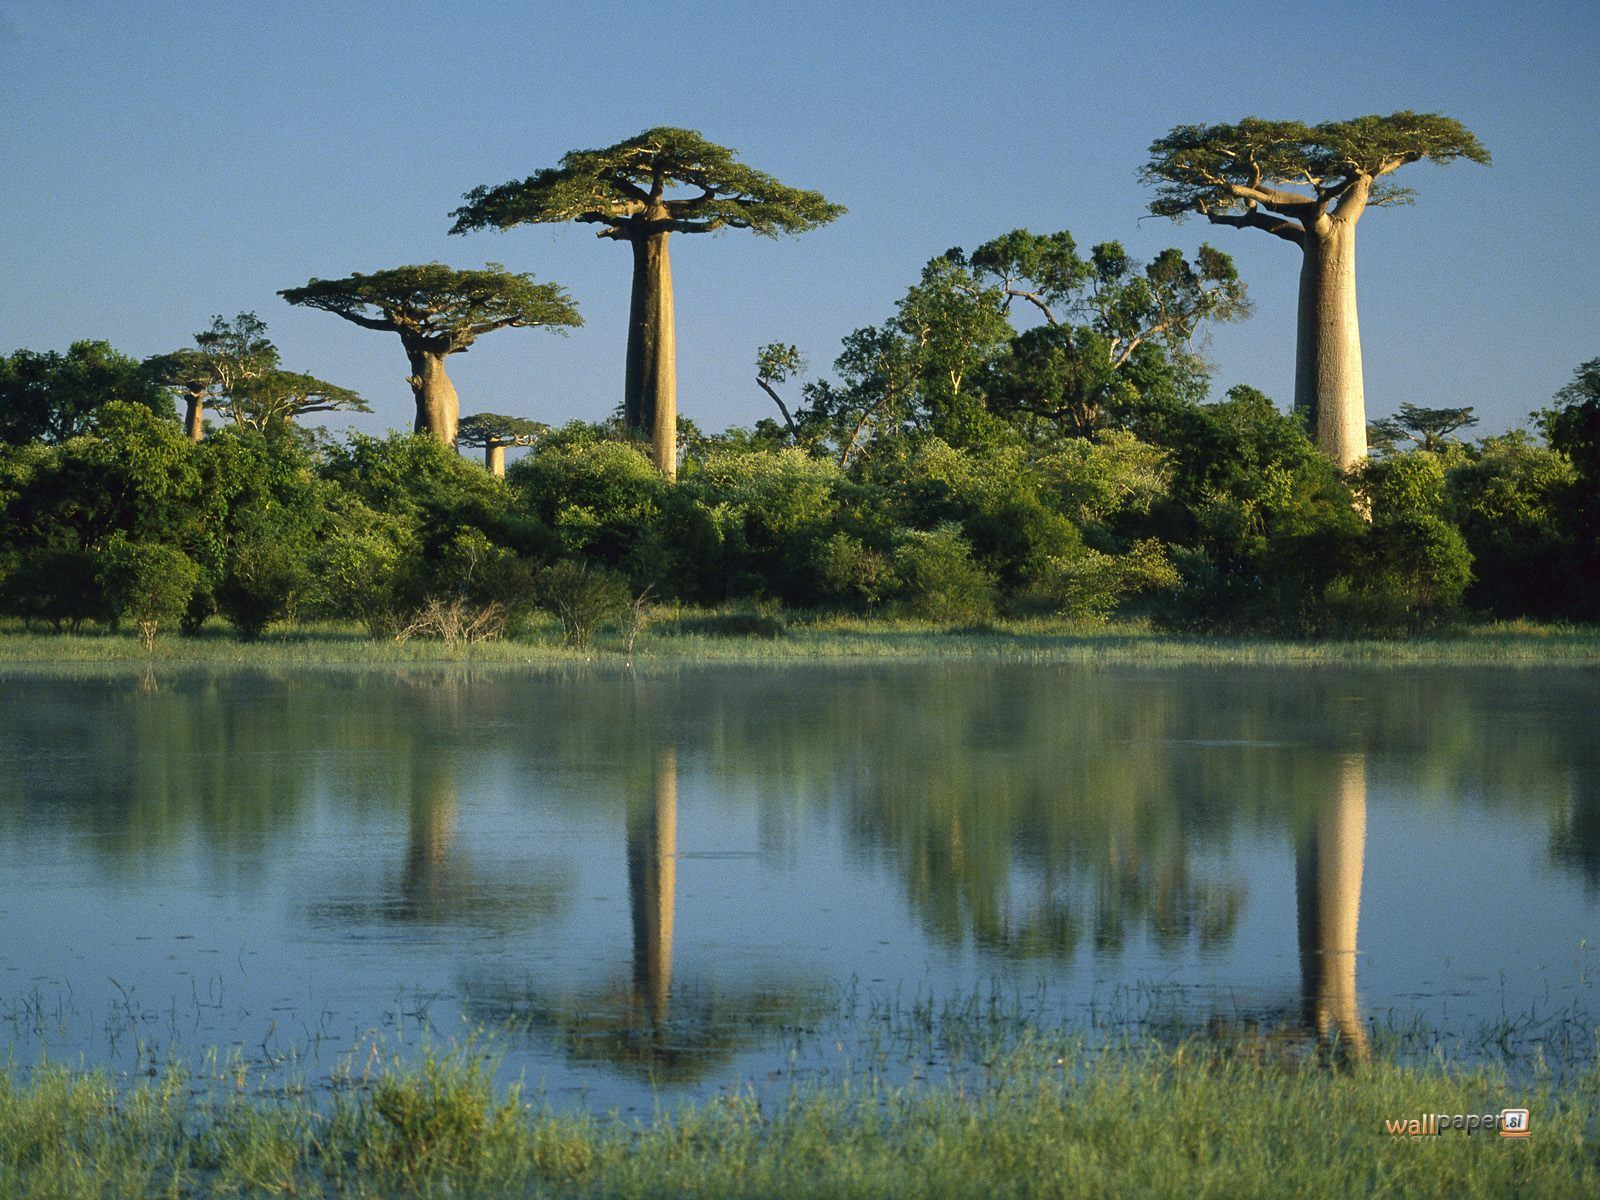 Africa images Madagascar wallpaper and background photos (1699543)